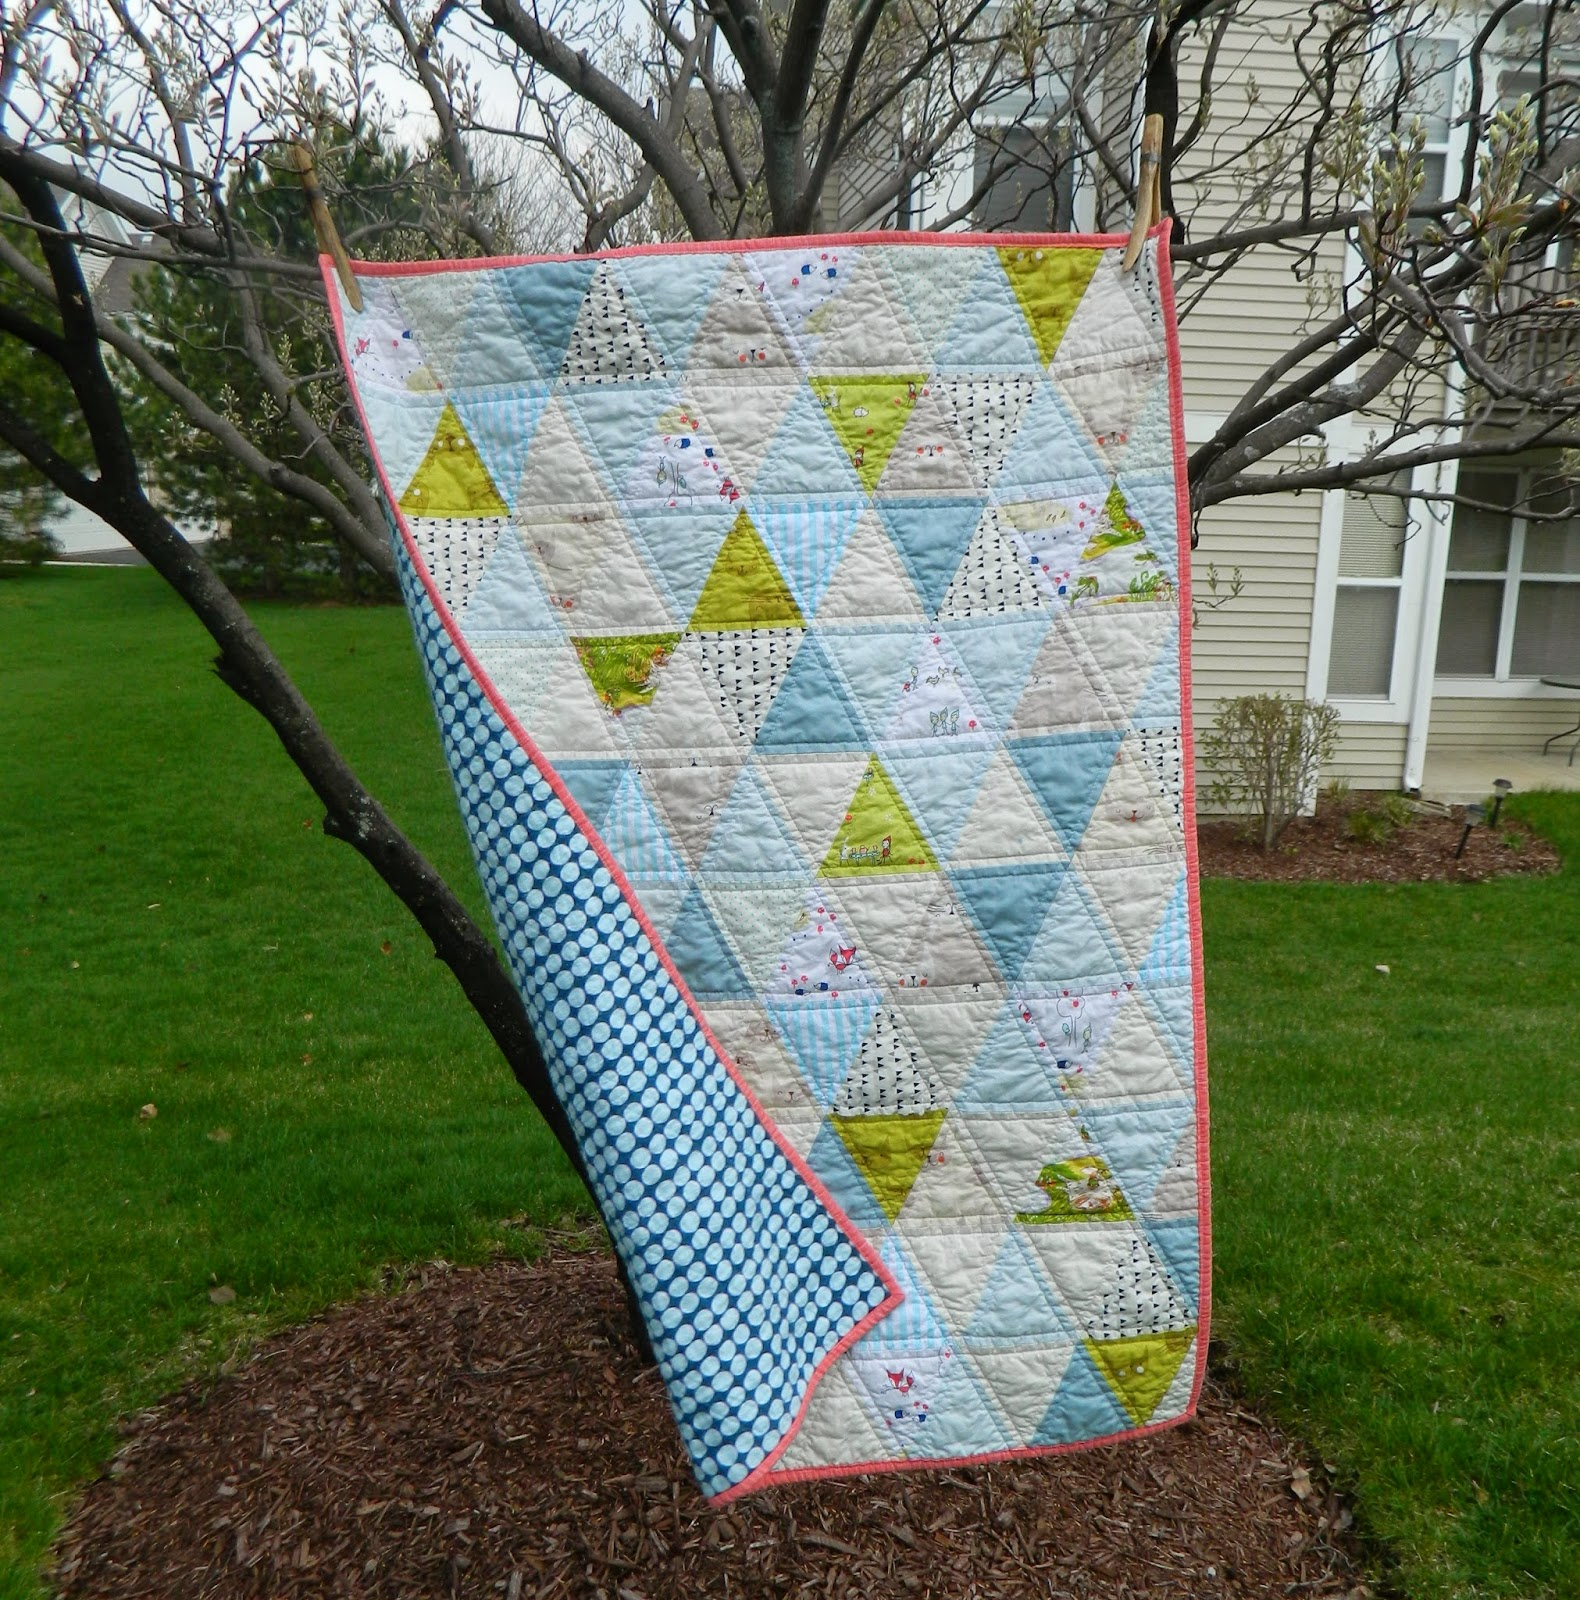 http://sotakhandmade.blogspot.com/2014/04/triangles-finished-baby-quilt.html